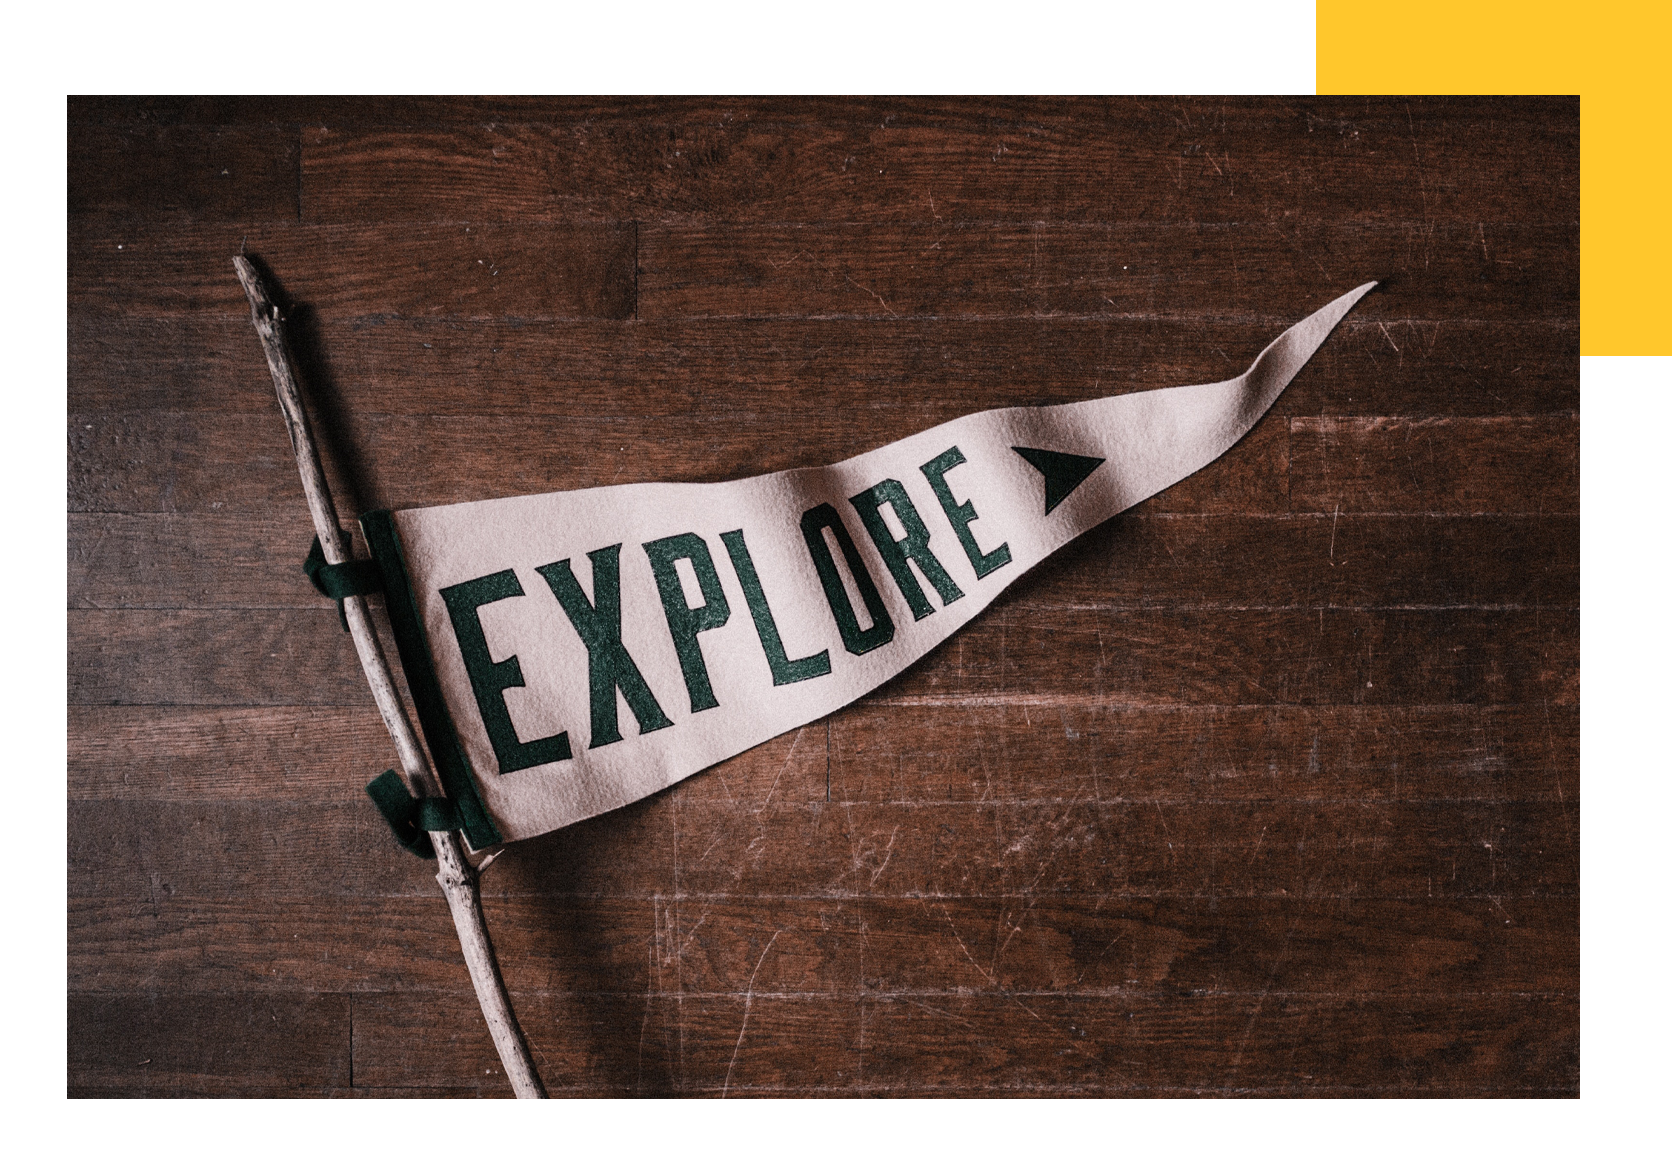 An explore flag to show we're proud watchmakers who love  a good midwestern adventure.